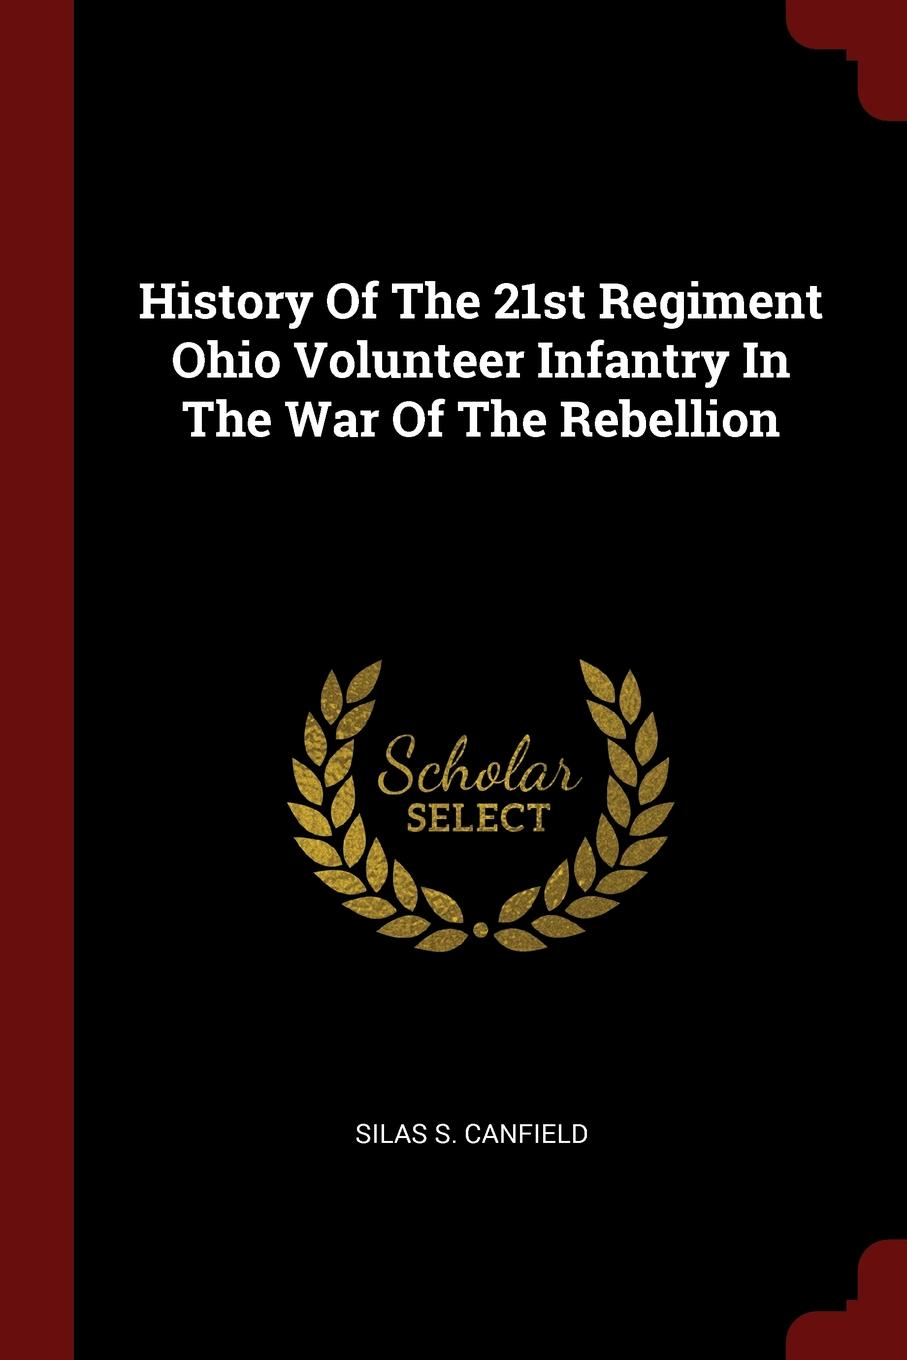 Silas S. Canfield History Of The 21st Regiment Ohio Volunteer Infantry In The War Of The Rebellion